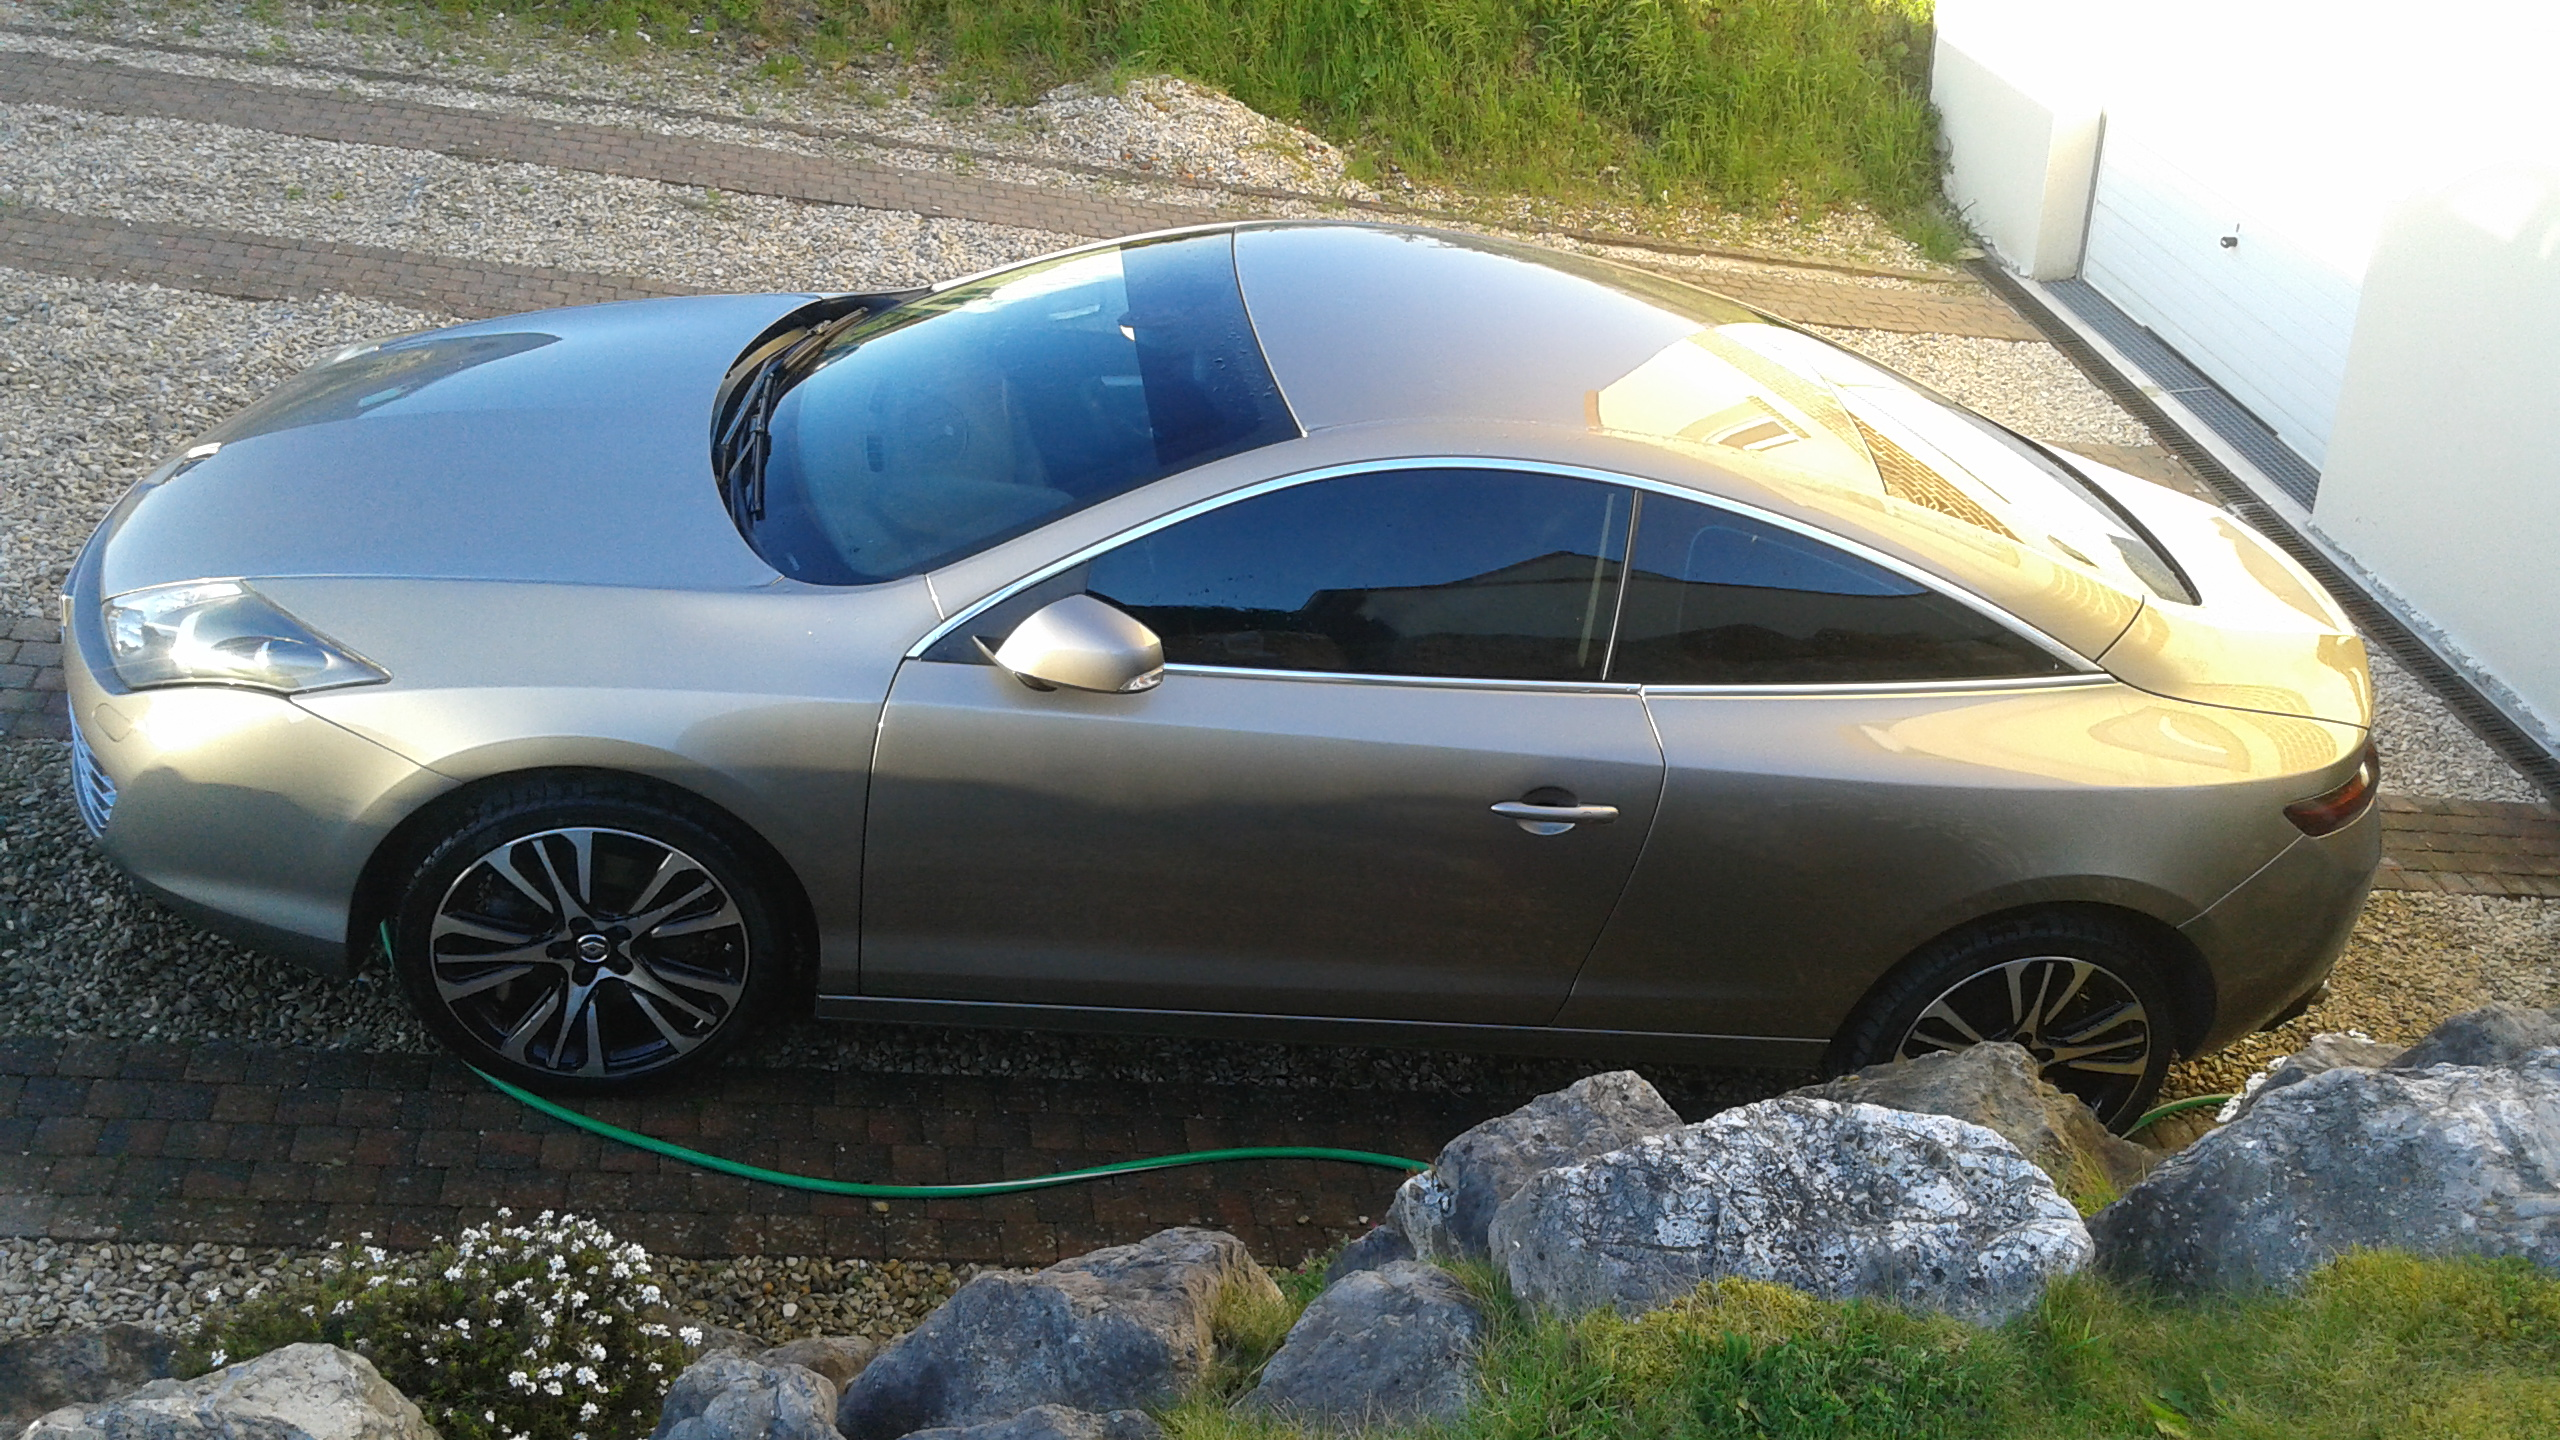 [nathanjo] Laguna III coupé initiale 3.0 dCi 235 - Page 5 20160417195145